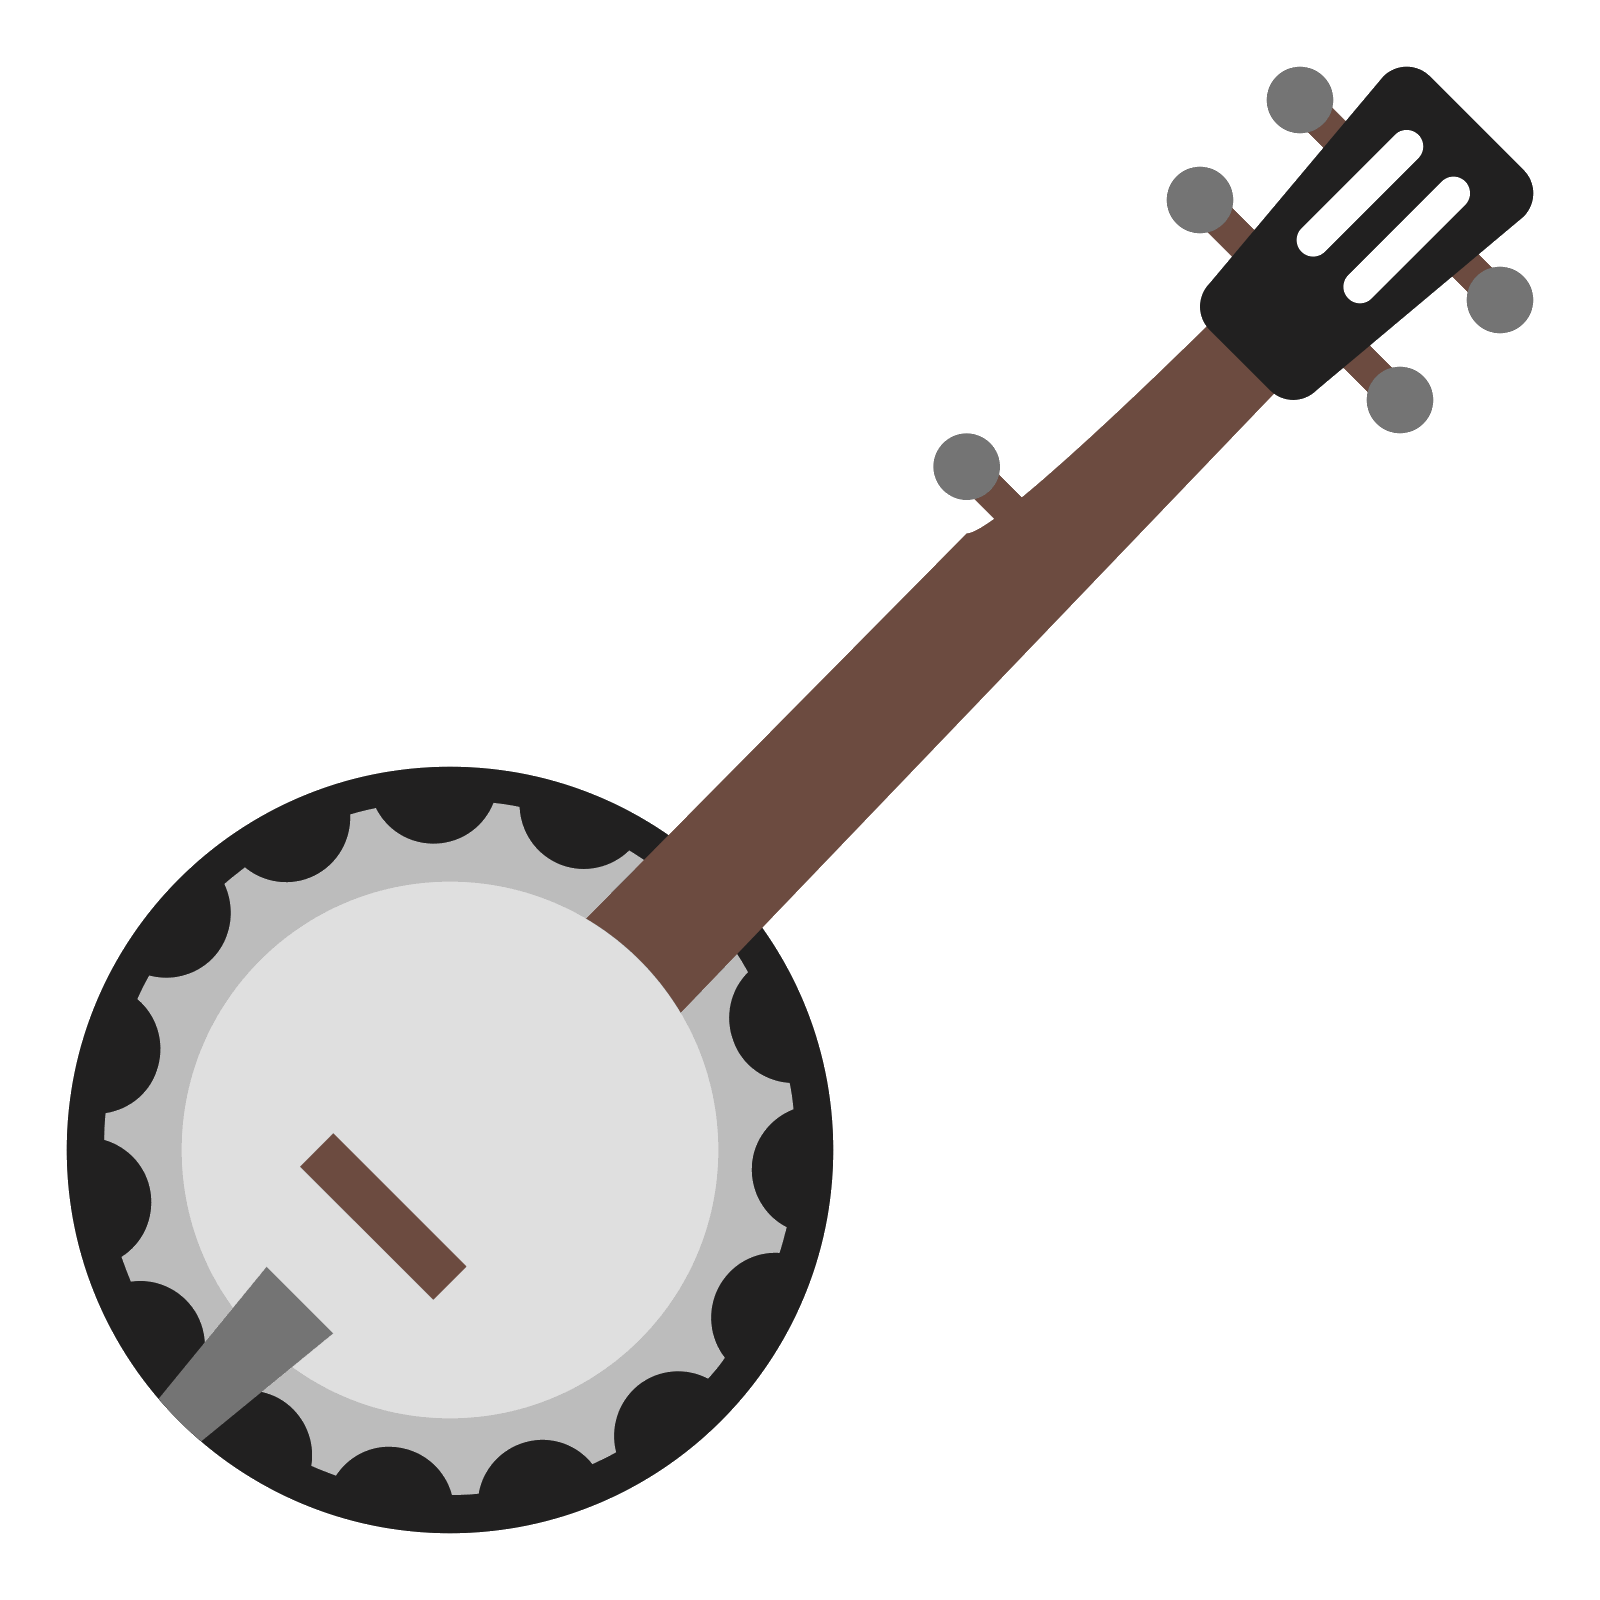 clip art transparent stock Icon free download png. Banjo vector.